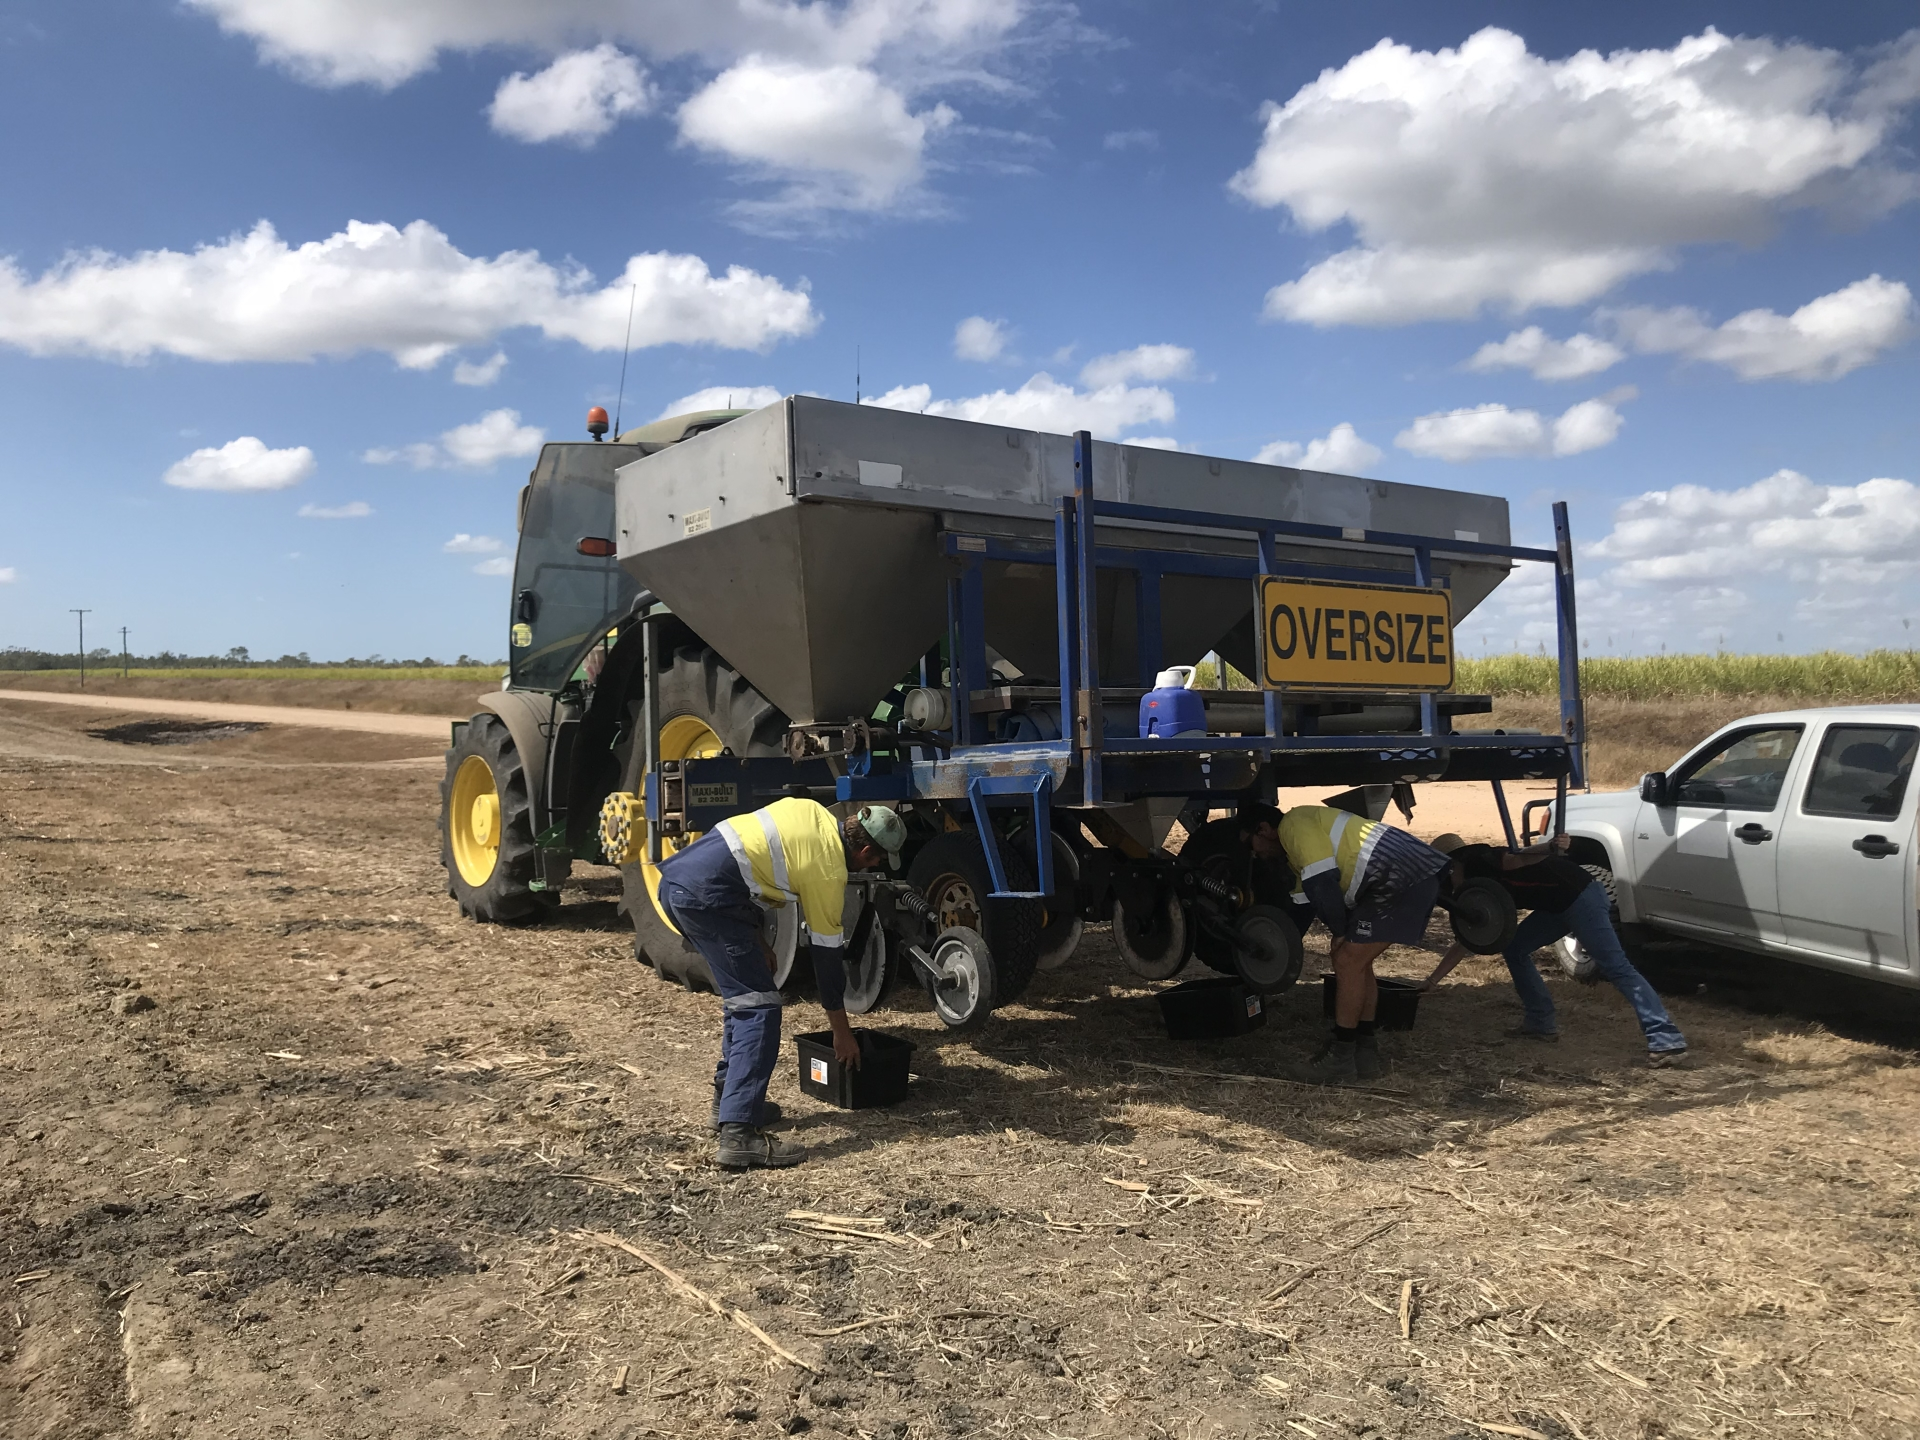 RP161 - Whole farm nutrient planning in 2020